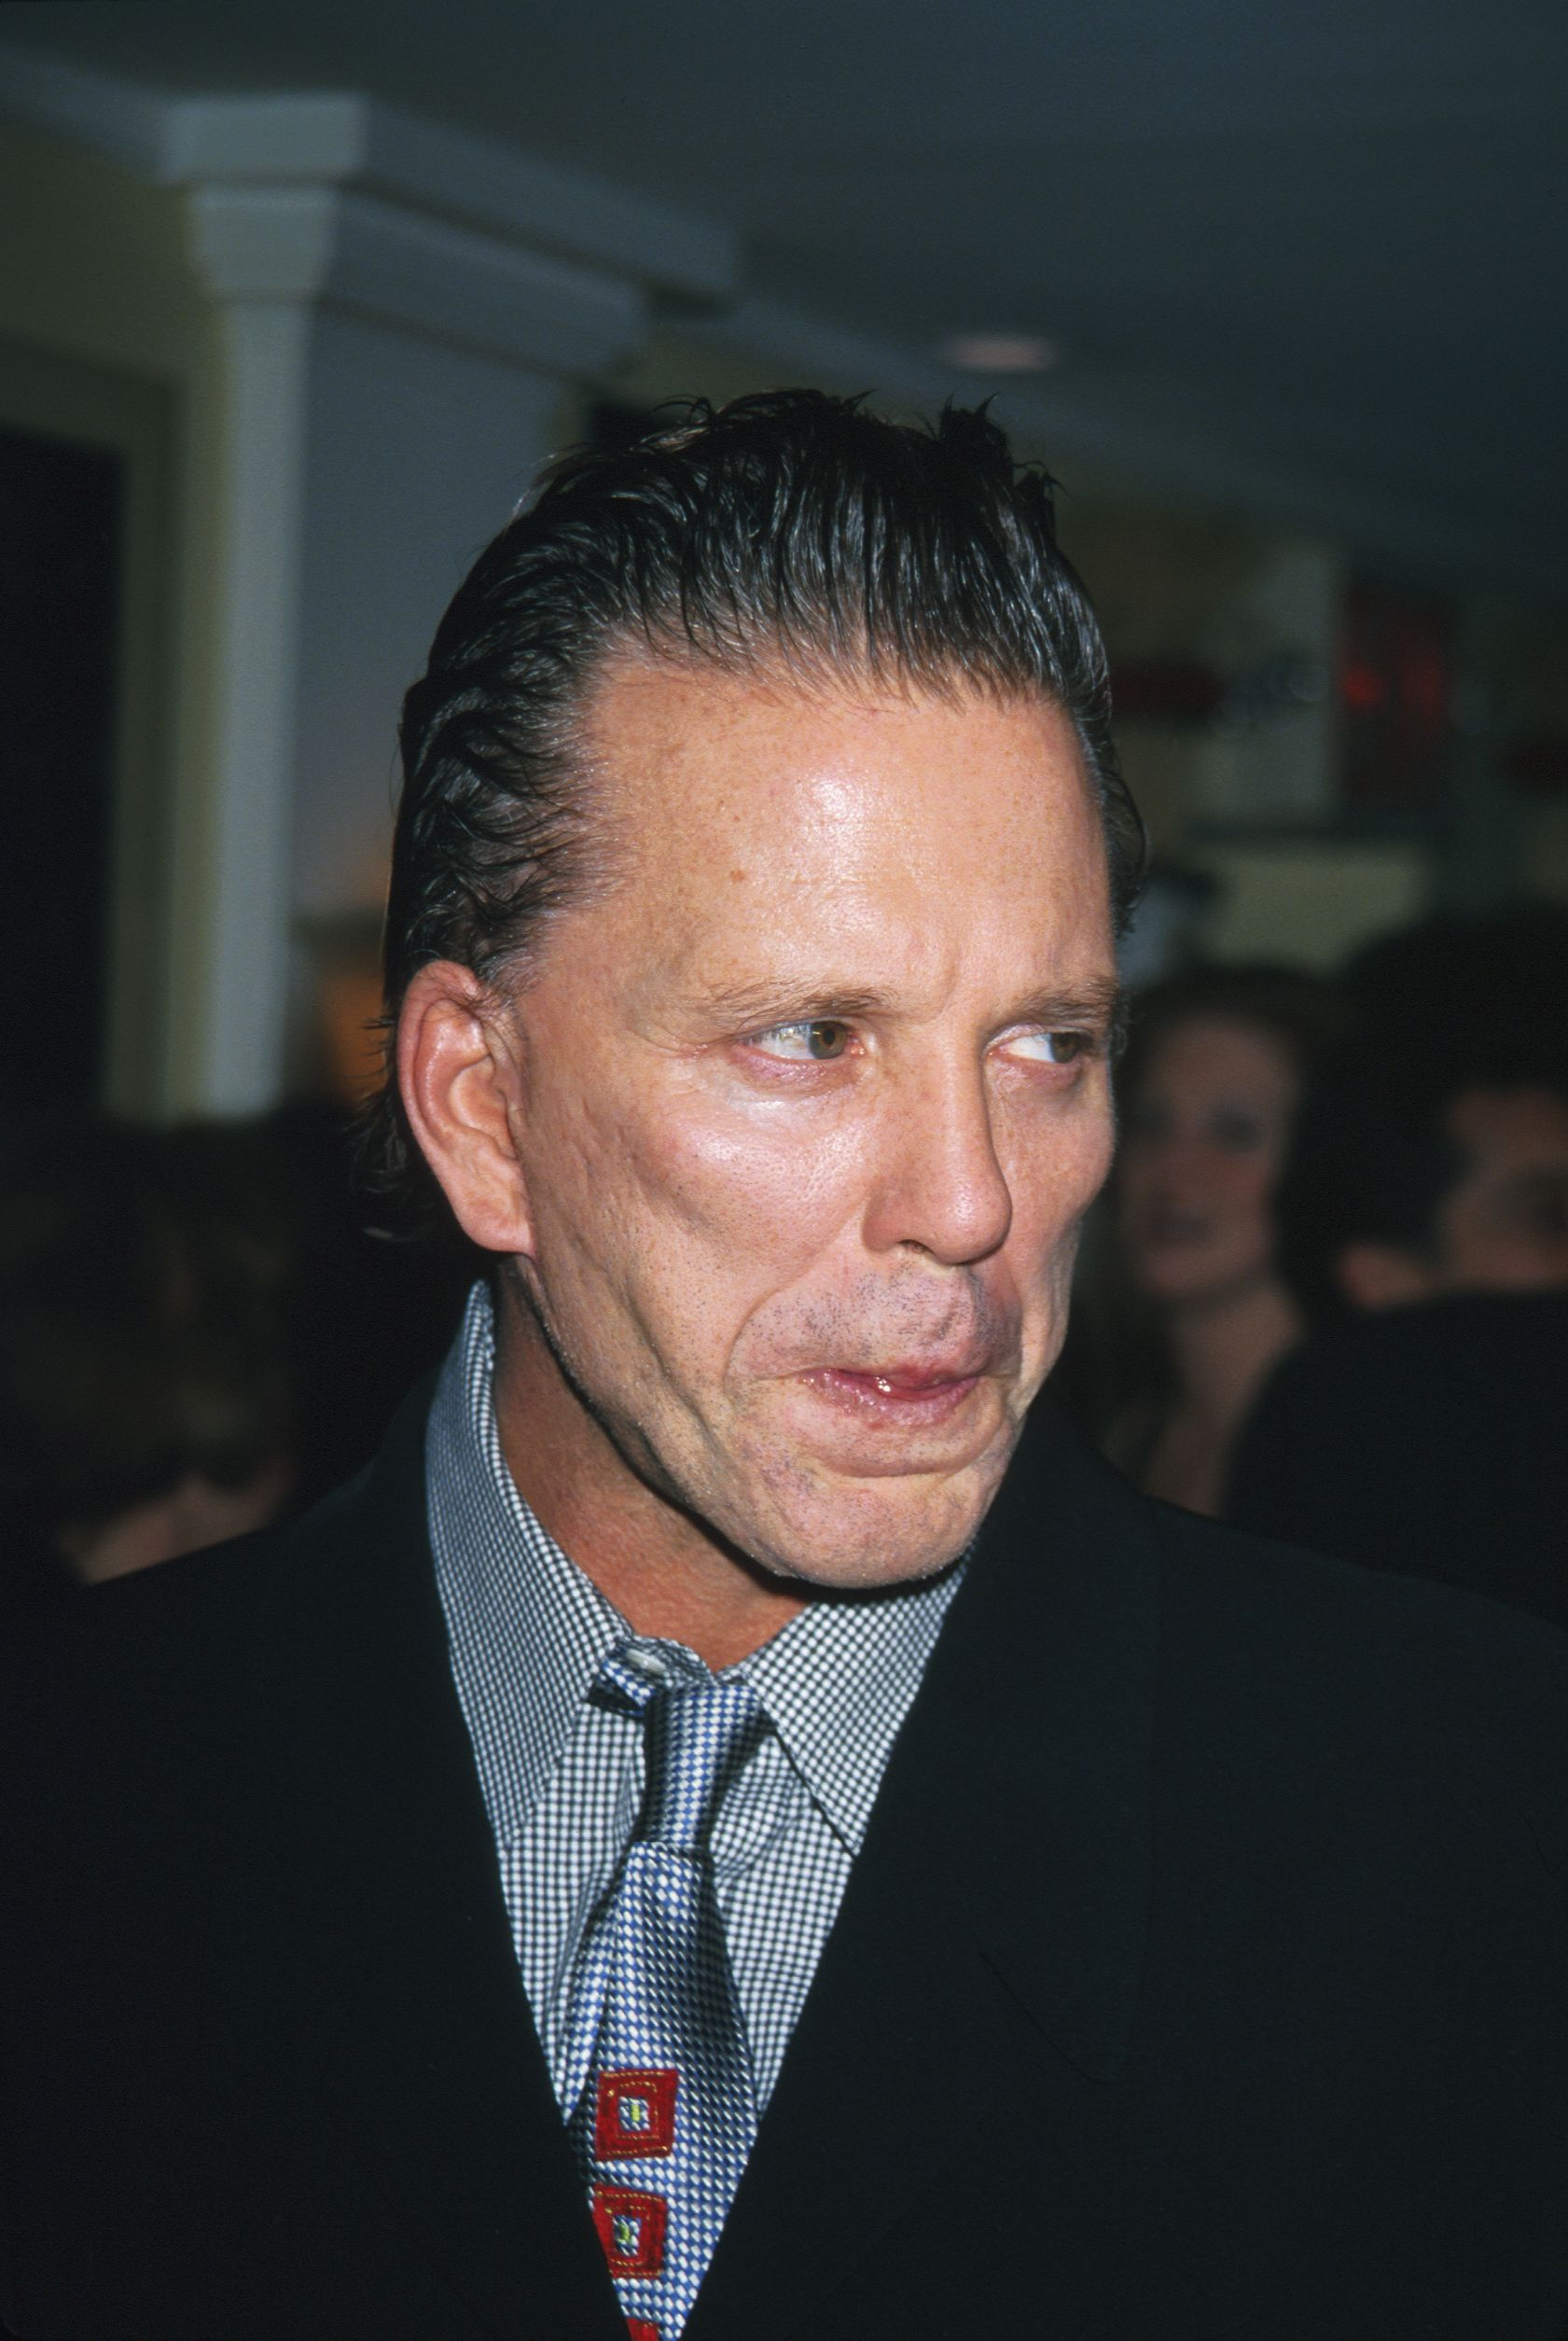 Mickey Rourke a Nello étteremben (Photo by Mitchell Gerber/Corbis/VCG via Getty Images)